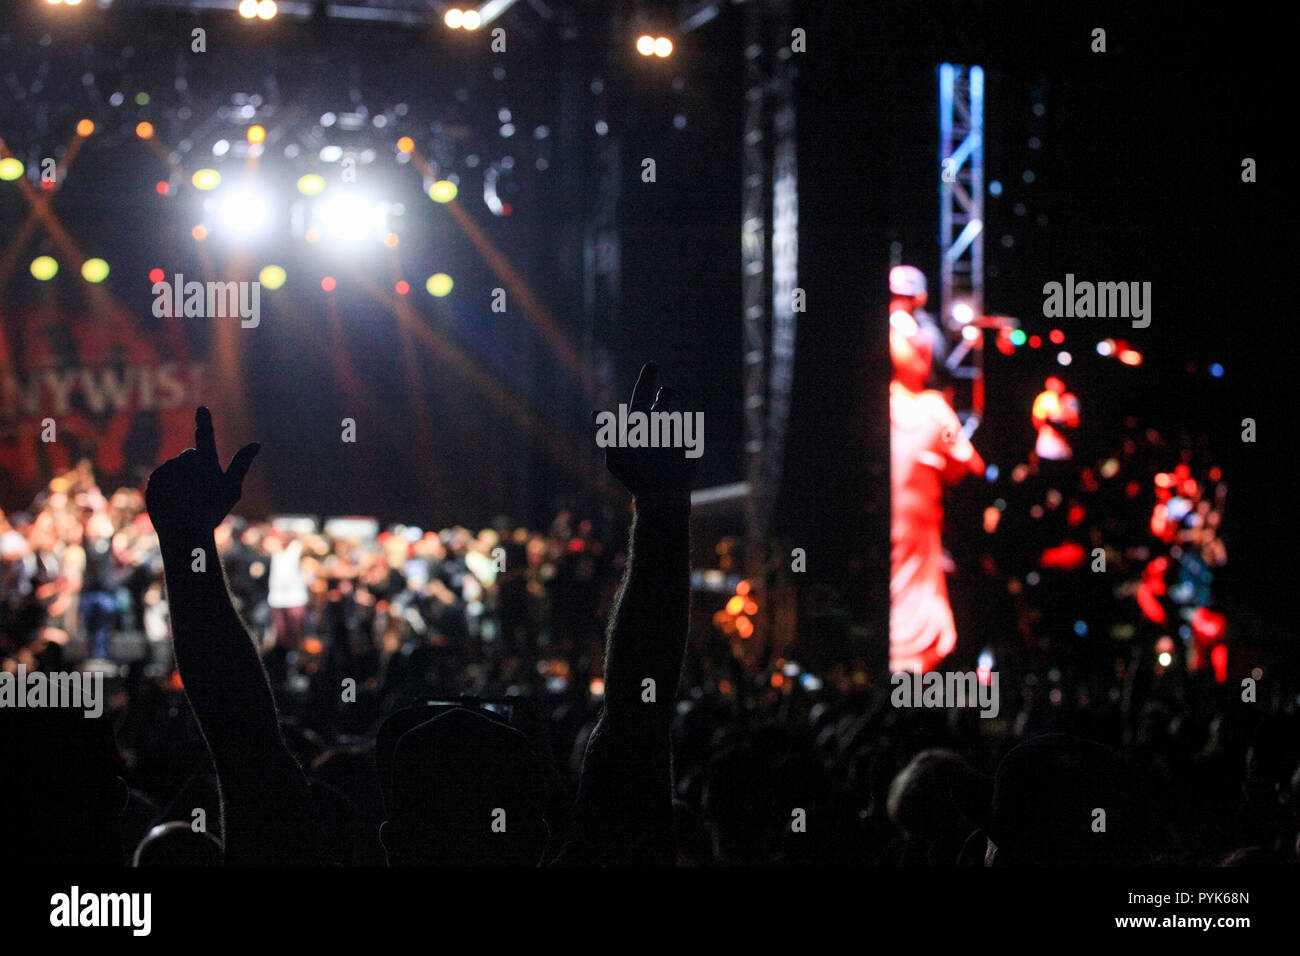 Huntington Beach, Ca. 27th Oct, 2018. Pennywise performs at Surf City Blitz at Huntington State Beach on October 27, 2018 in Huntington Beach, CA. Credit: Cvp/Image Space/Media Punch/Alamy Live News - Stock Image